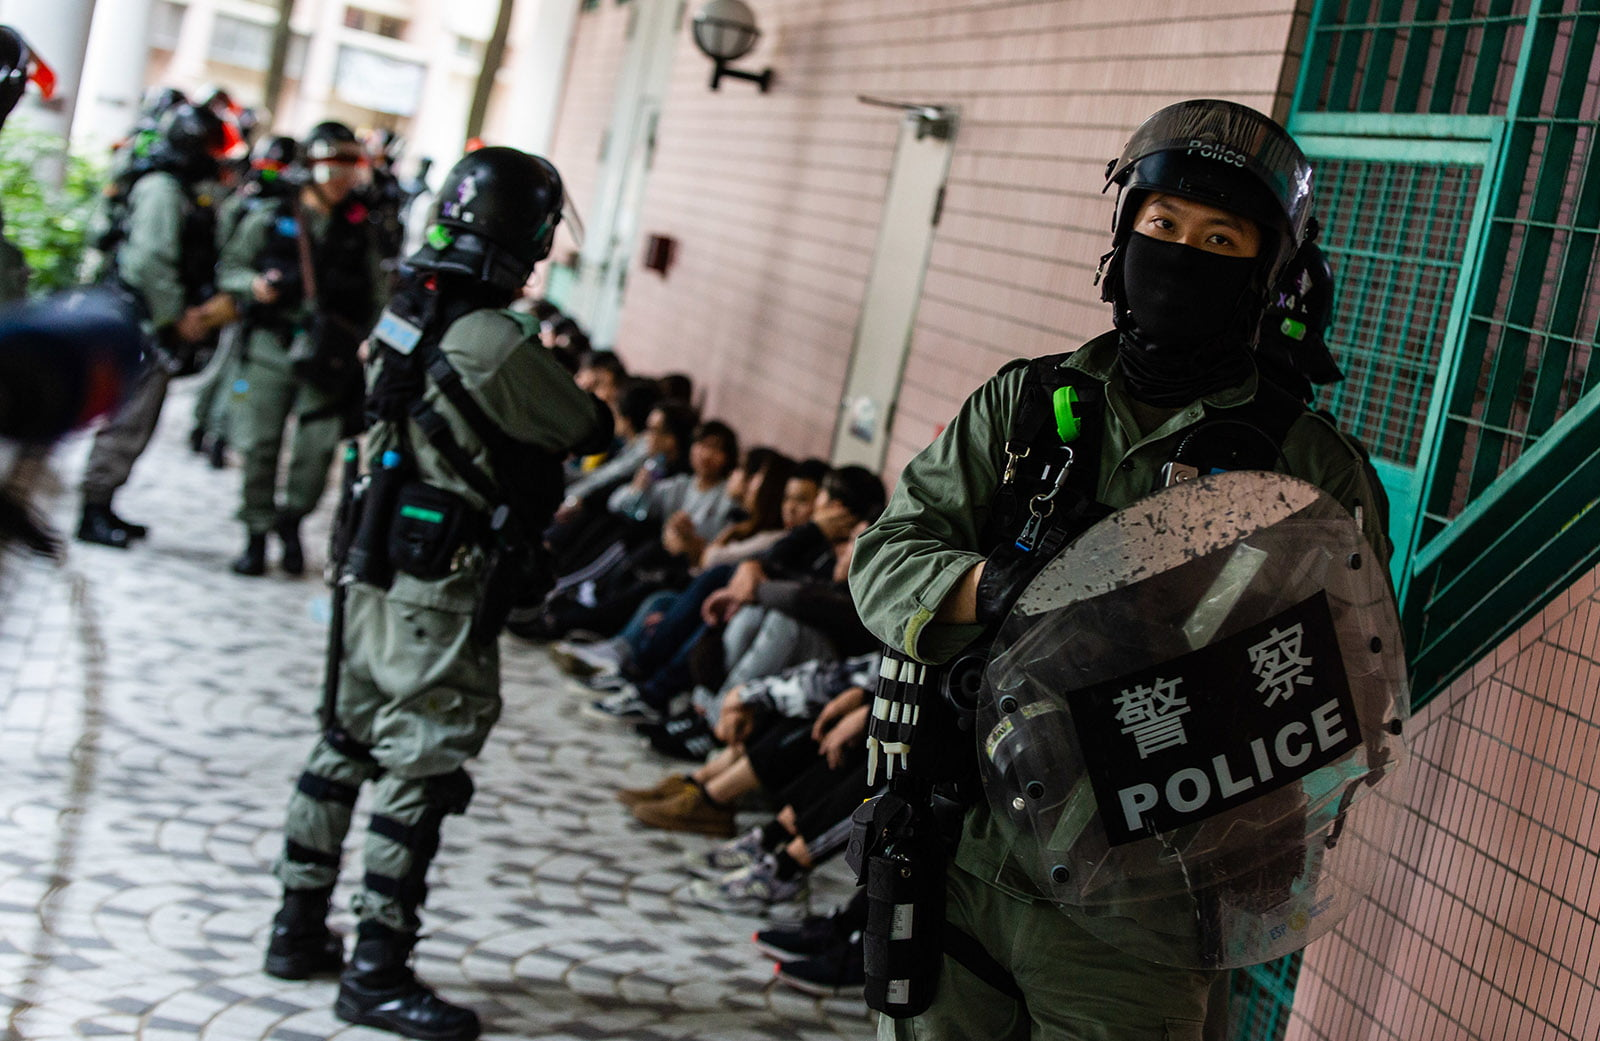 China threatens to respond to US sanctions for abuse in Xinjiang